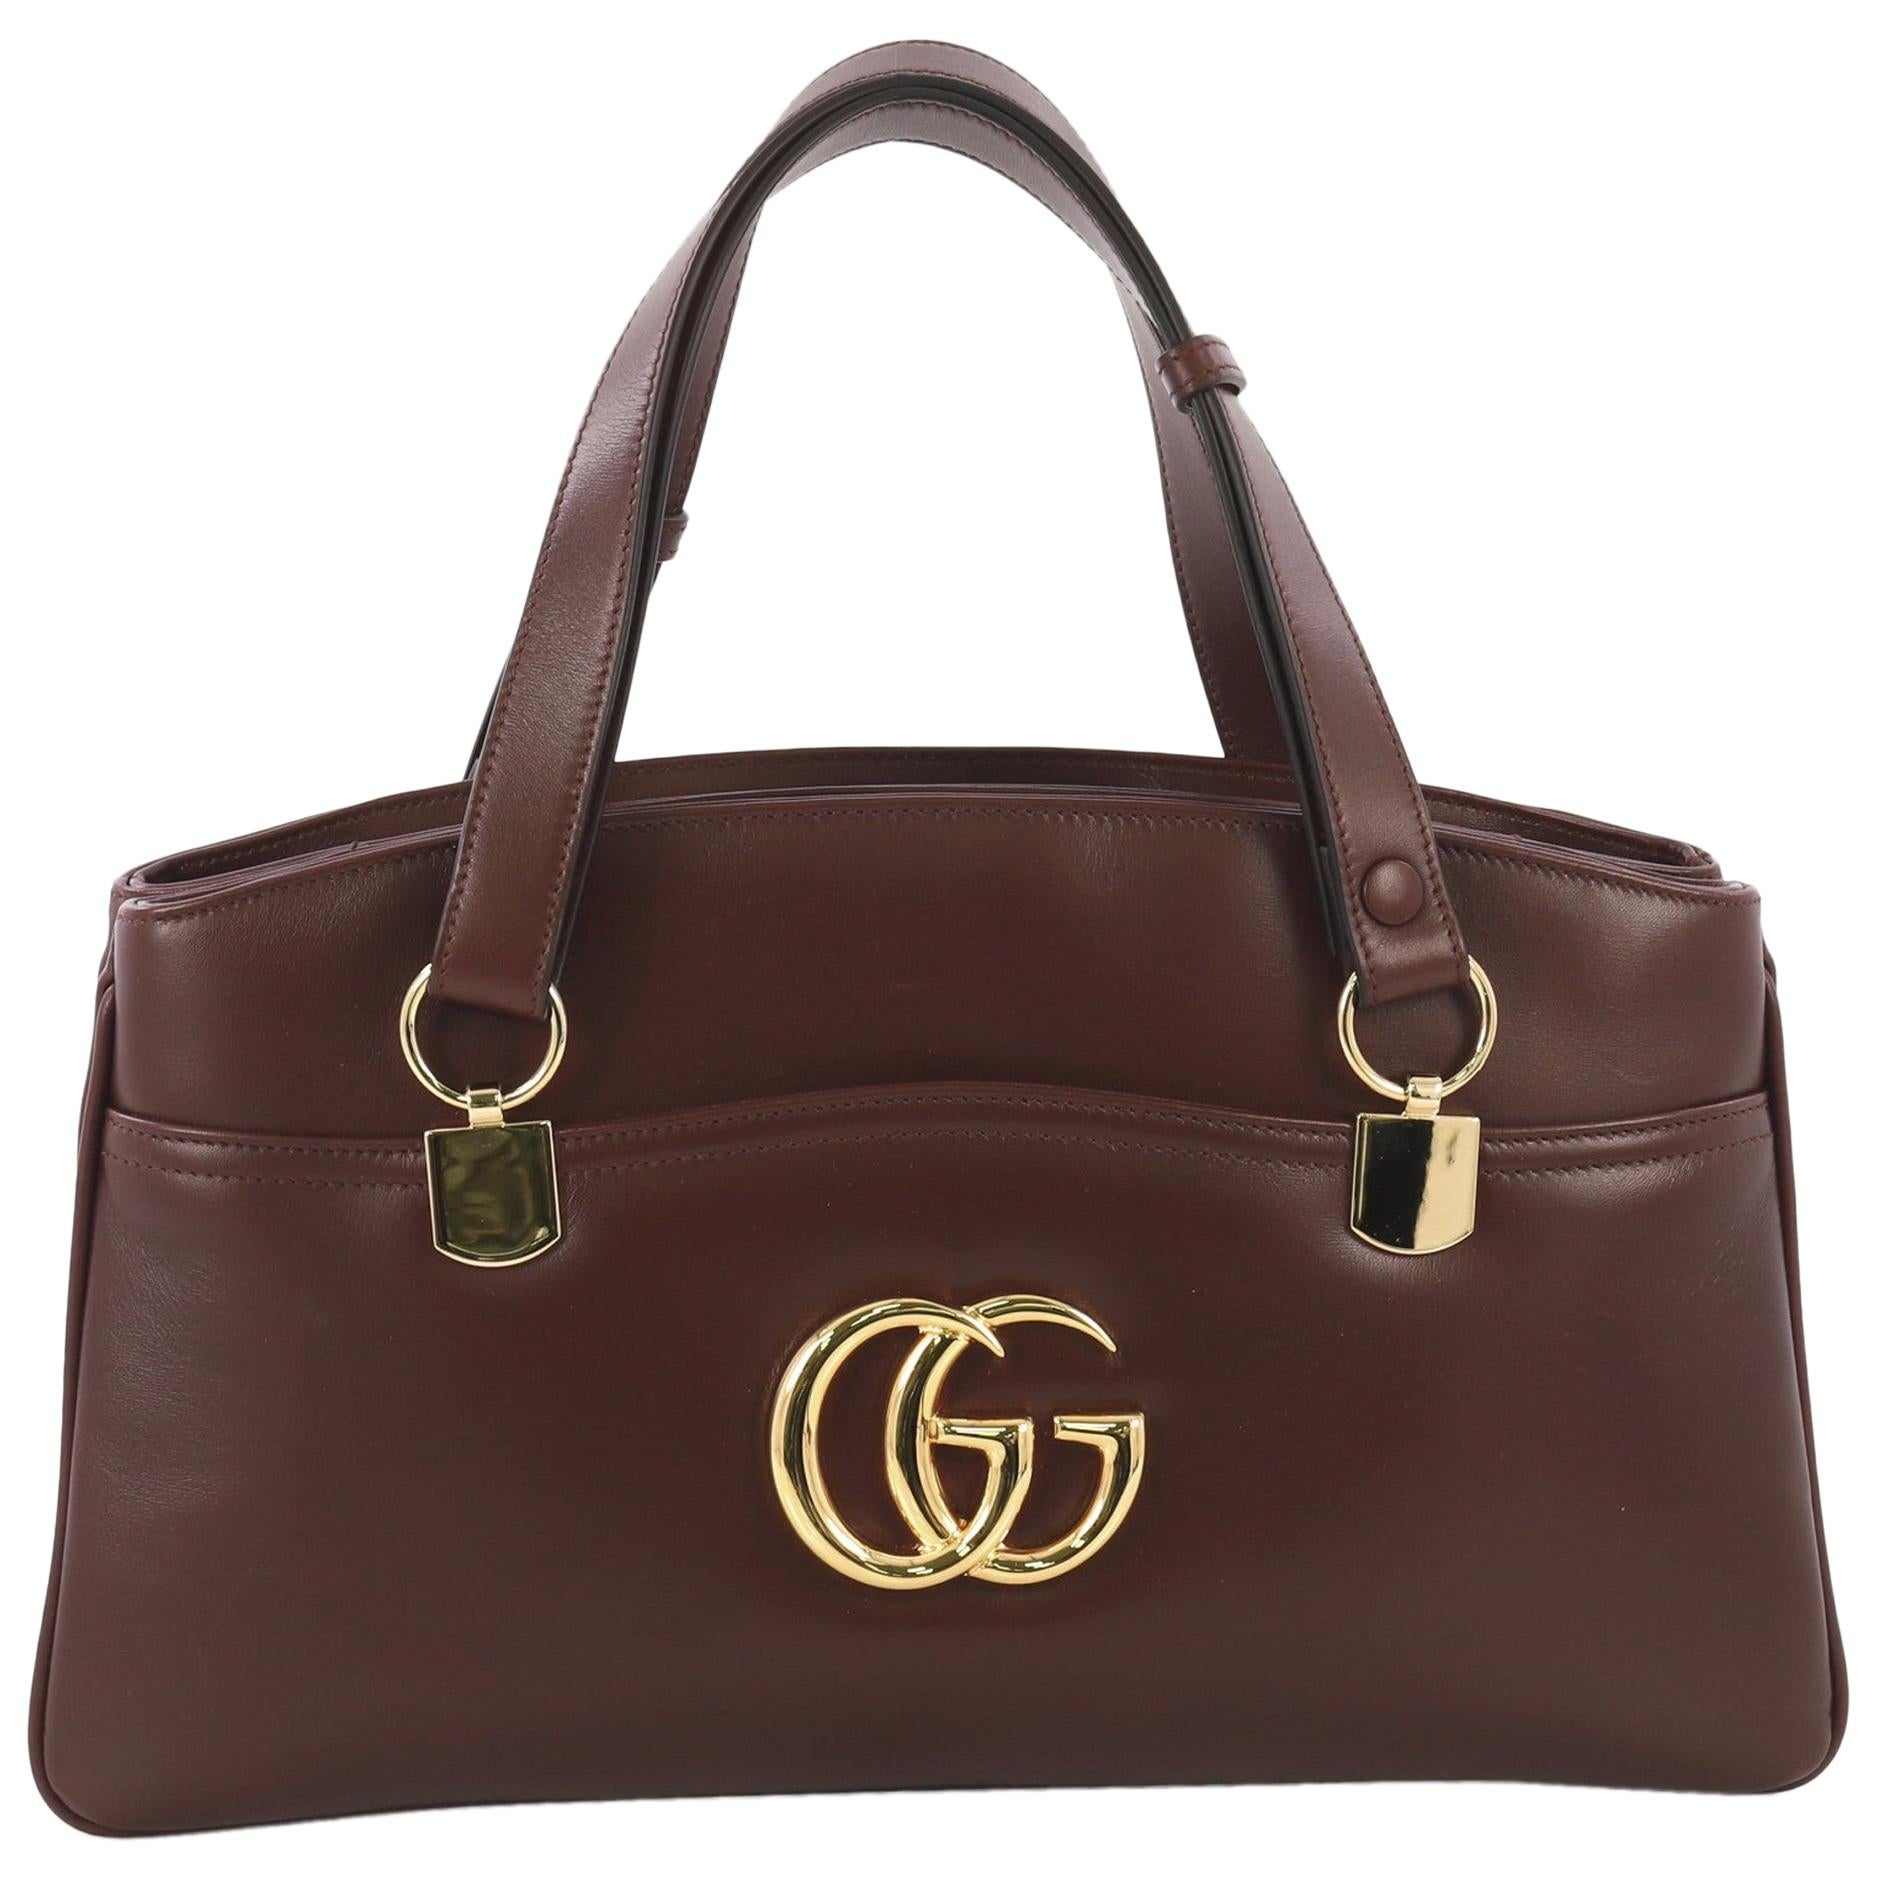 86250bd7b49e58 Vintage Gucci Handbags and Purses - 2,046 For Sale at 1stdibs